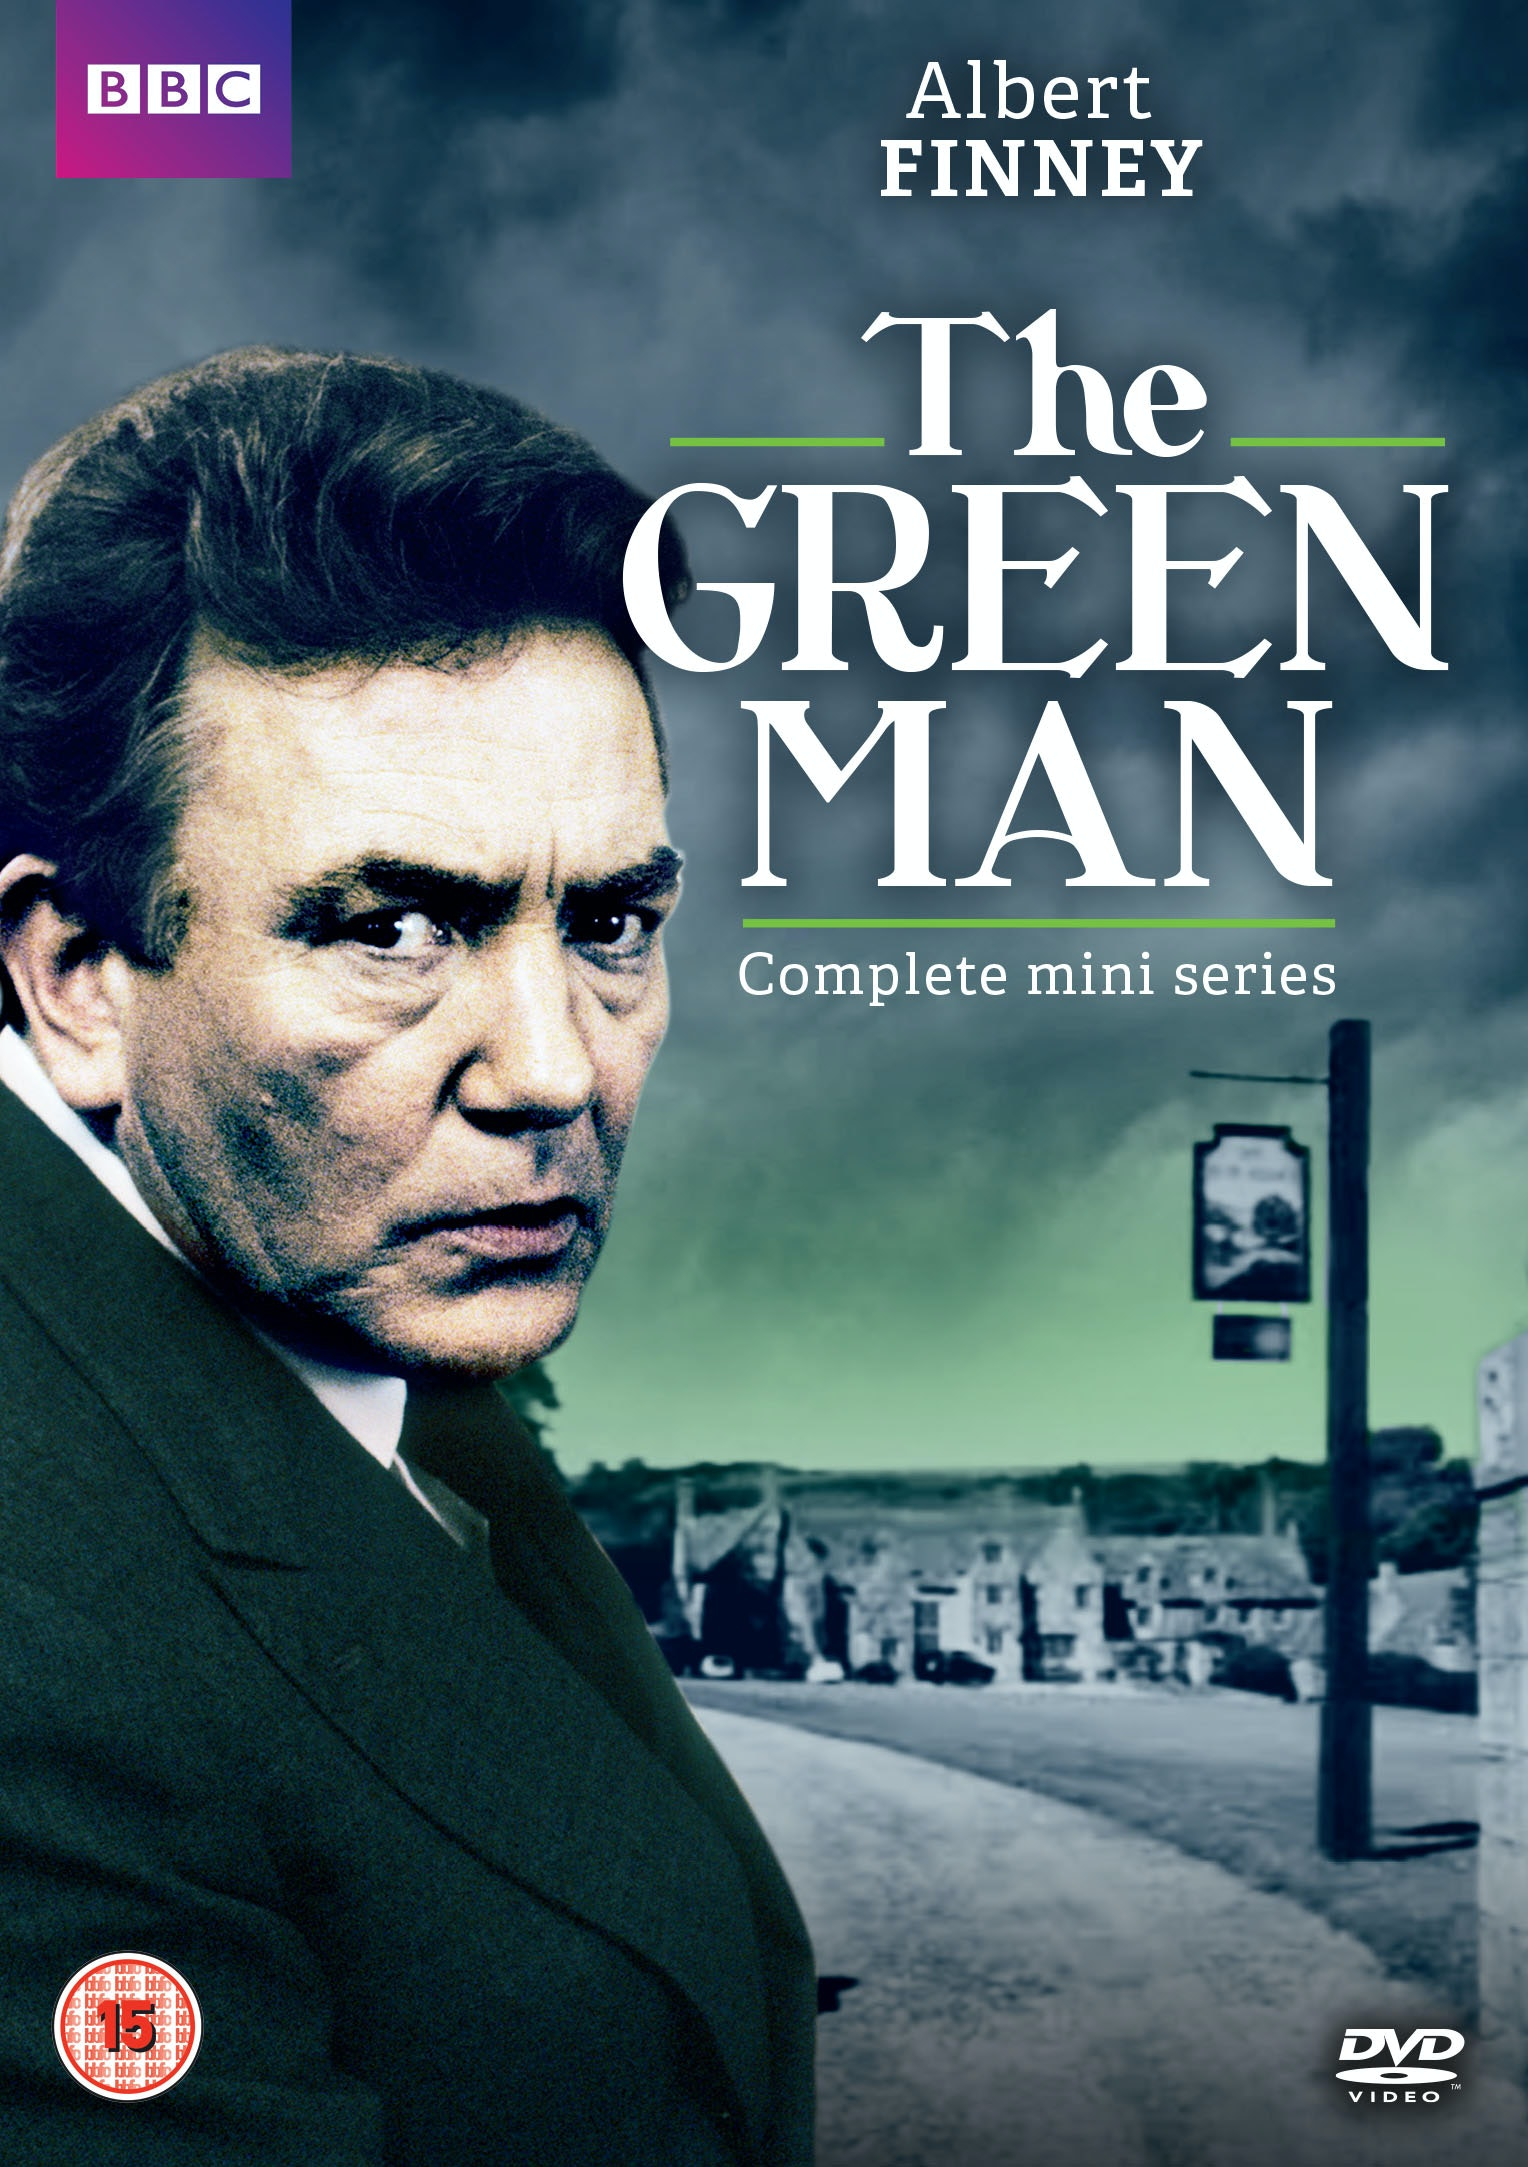 The Green Man sweepstakes